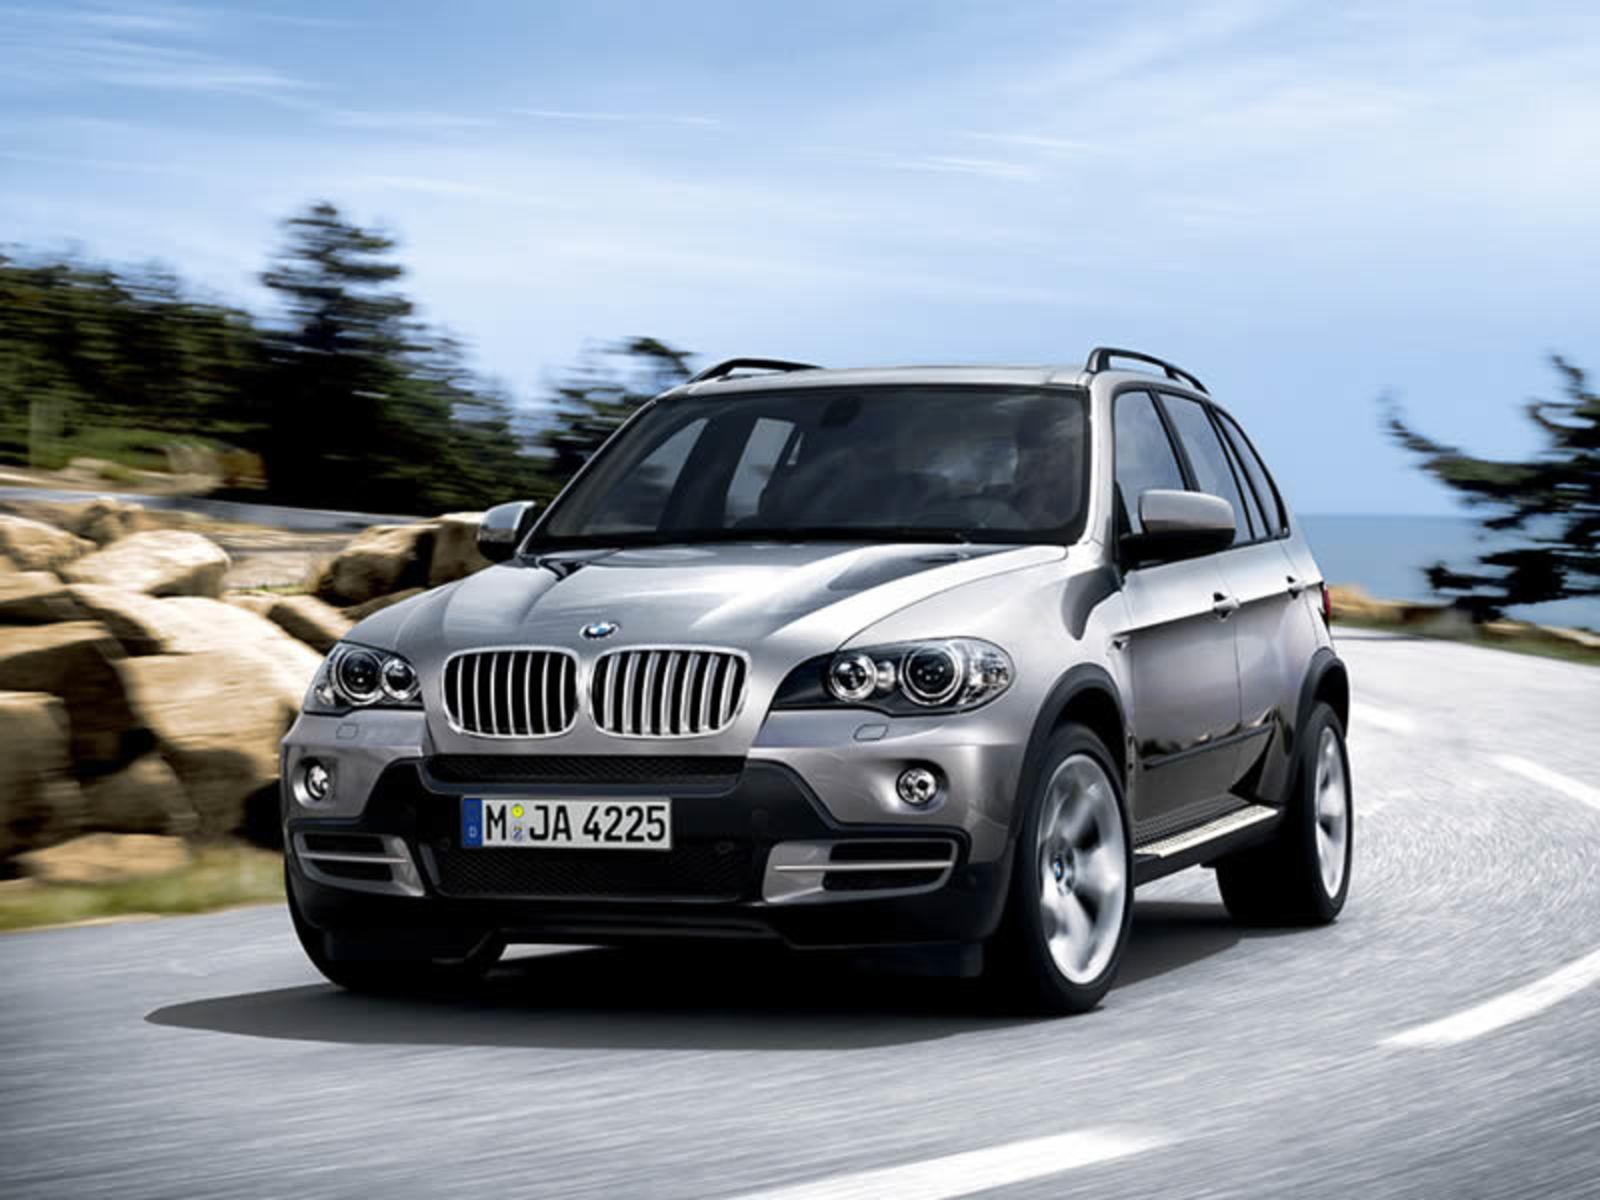 bmw x5 powered by the world 39 s most powerful six cylinder diesel engine news top speed. Black Bedroom Furniture Sets. Home Design Ideas